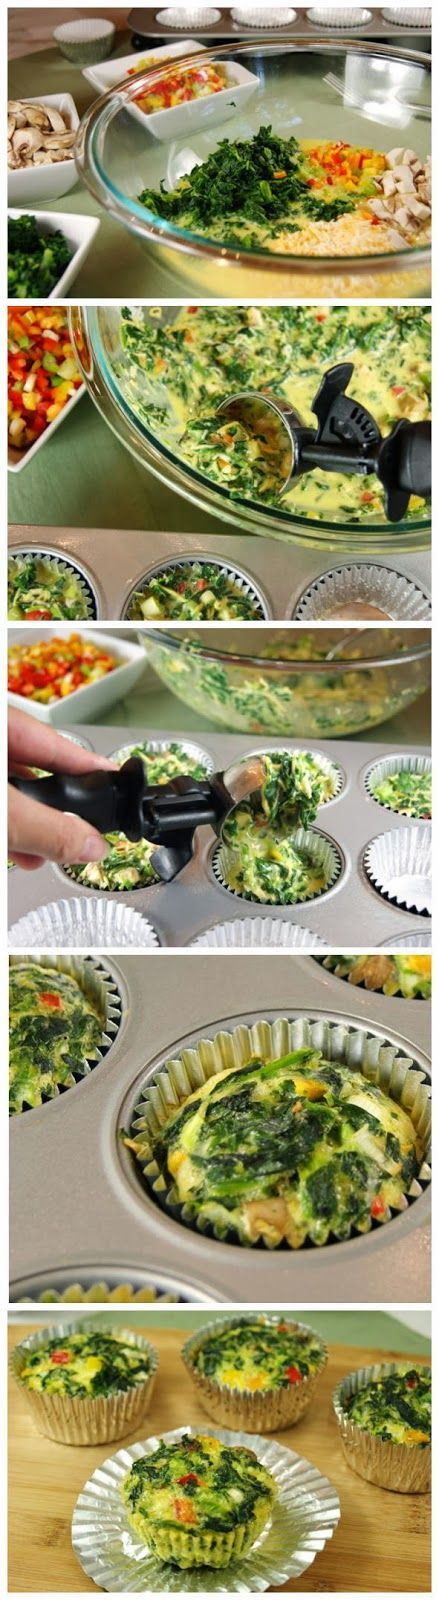 Vegetable Quiche Cups To-Go | CookJino